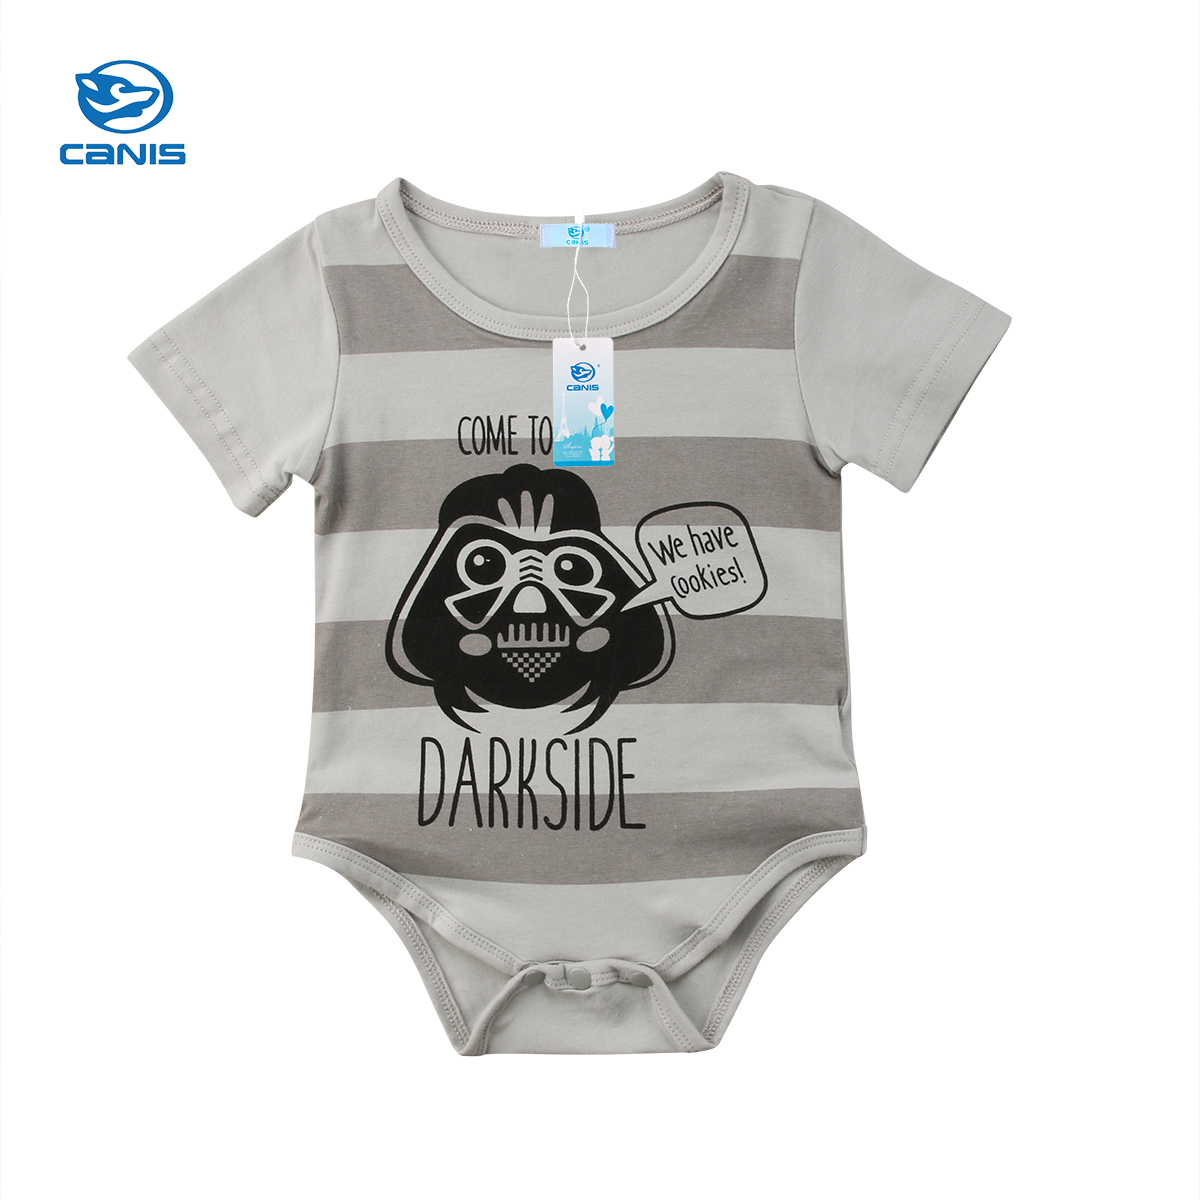 Toddler Baby Romper Summer Clothes Newborn Kids Baby Boy Girl Star Wars Romper Jumpsuit  ...